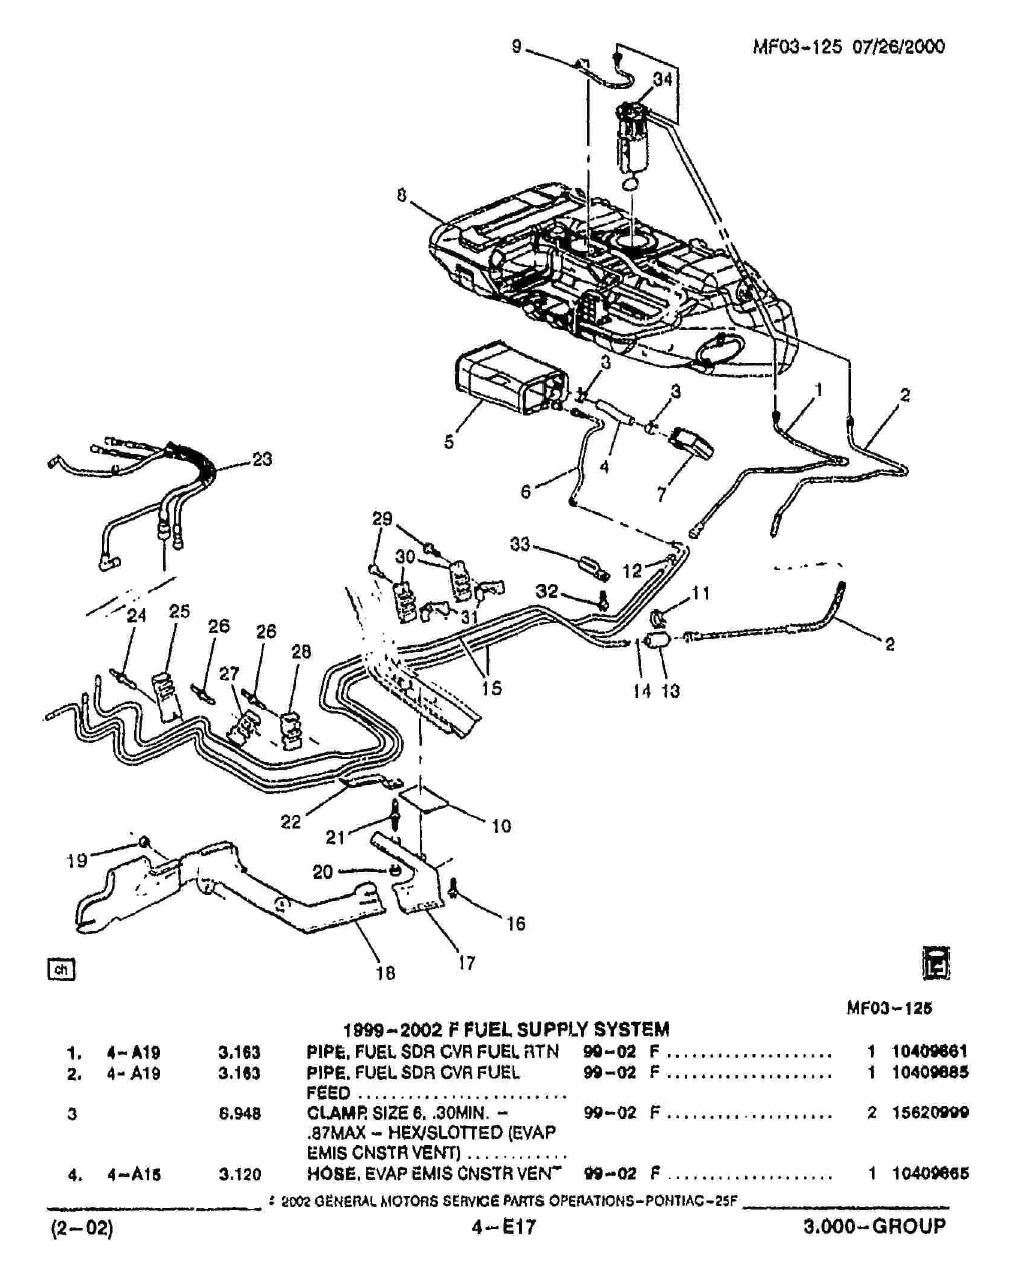 2000 Pontiac Montana Cooling System Diagram Automotive Wiring For 99 Engine 95 Lt1 Opti Spark Vacuum Lines 880227 And 2001 Diagrams Coolant